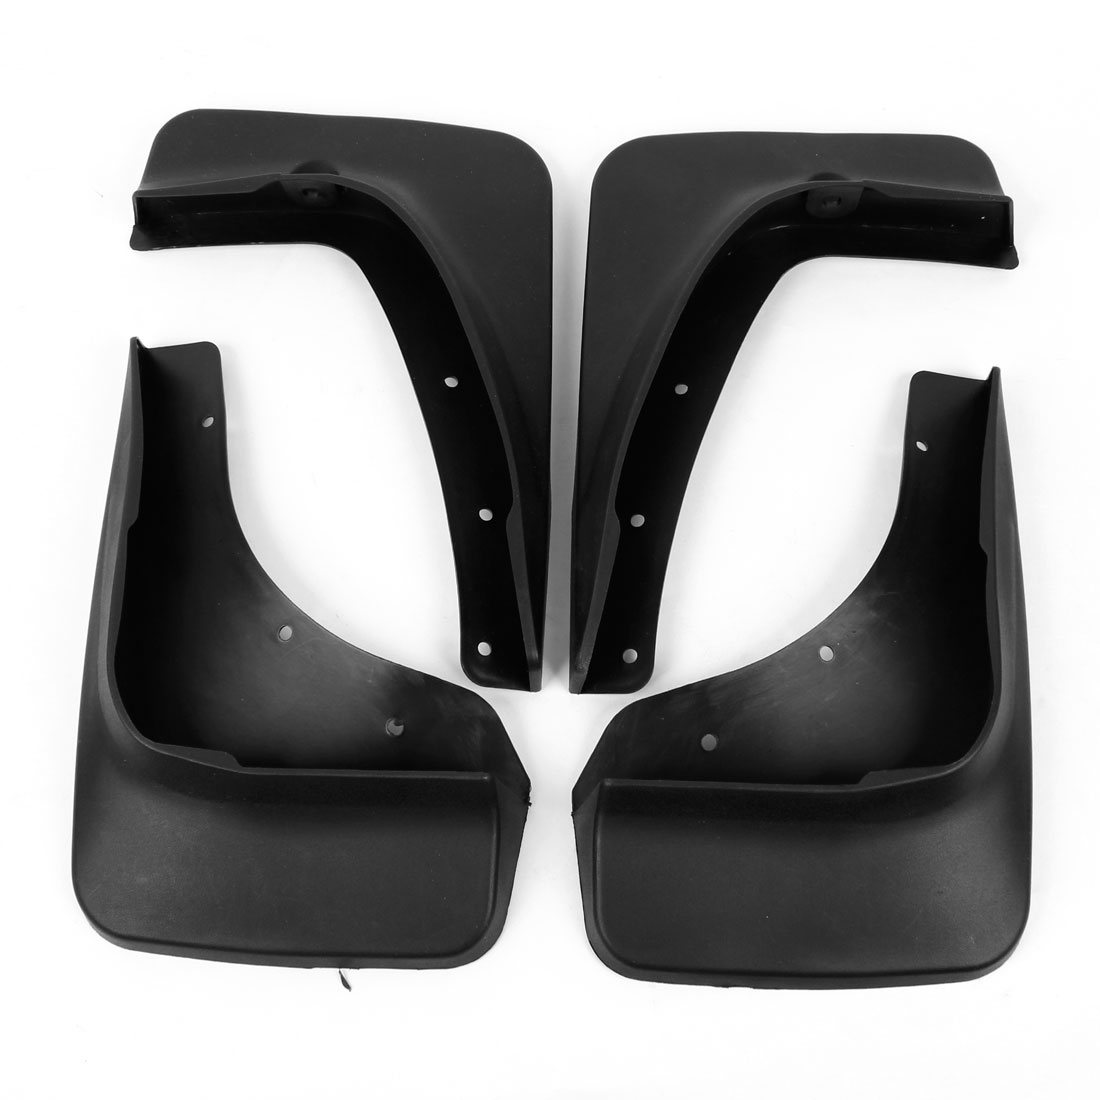 4 Pcs Black Left Right Splash Guards Plastic Mud Flaps Set for Mazda CX-5